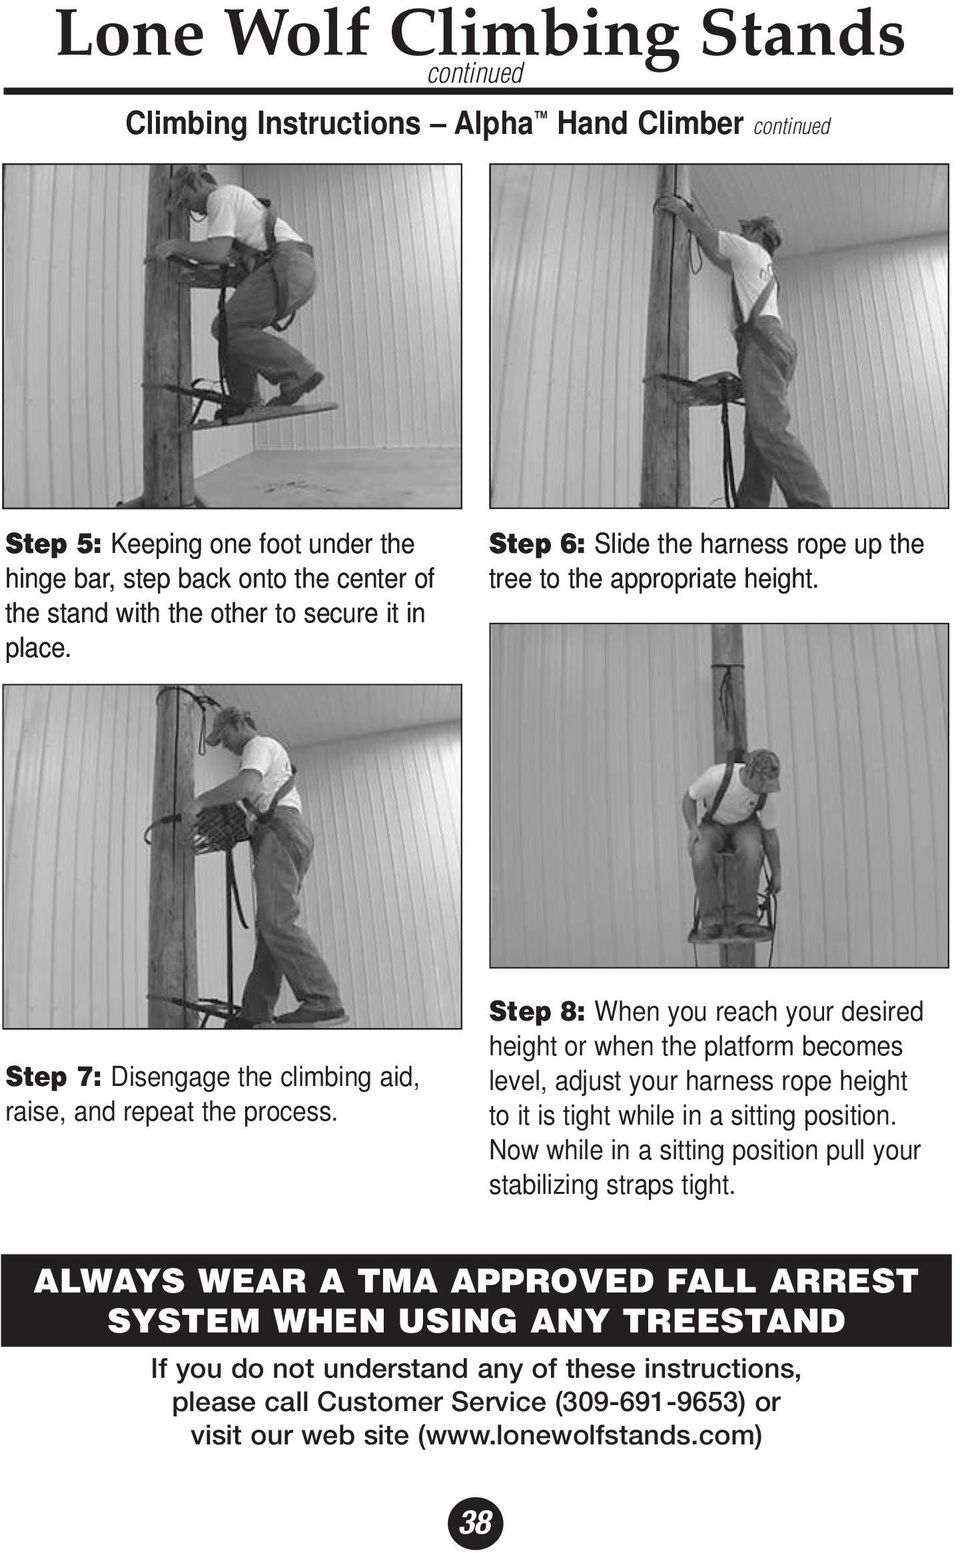 Step 7: Disengage the climbing aid, raise, and repeat the process.